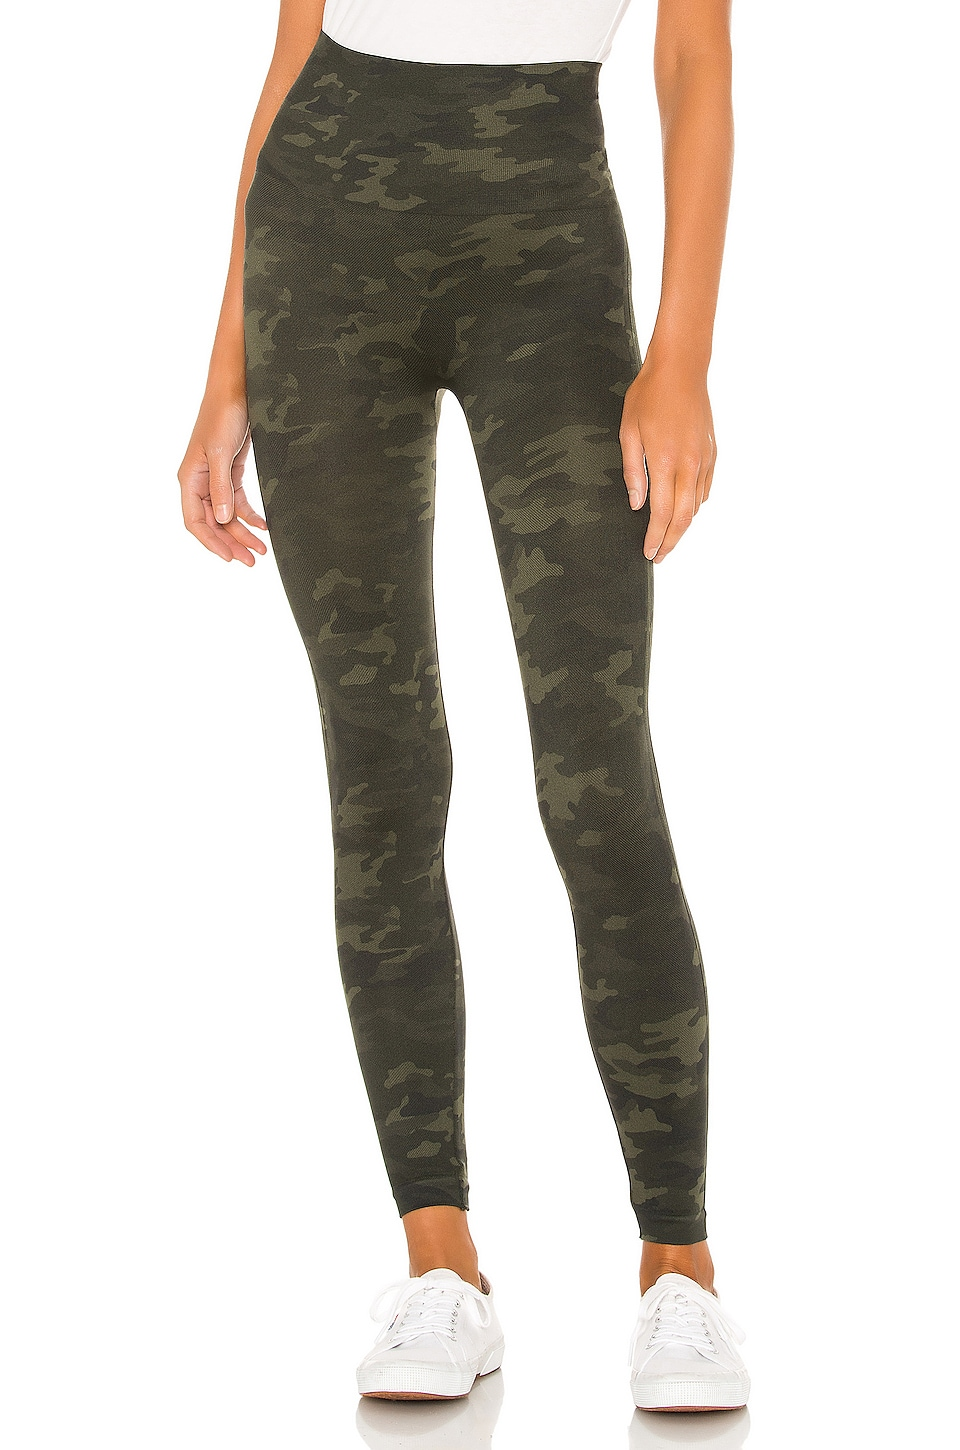 SPANX Look At Me Now Seamless Legging in Green Camo